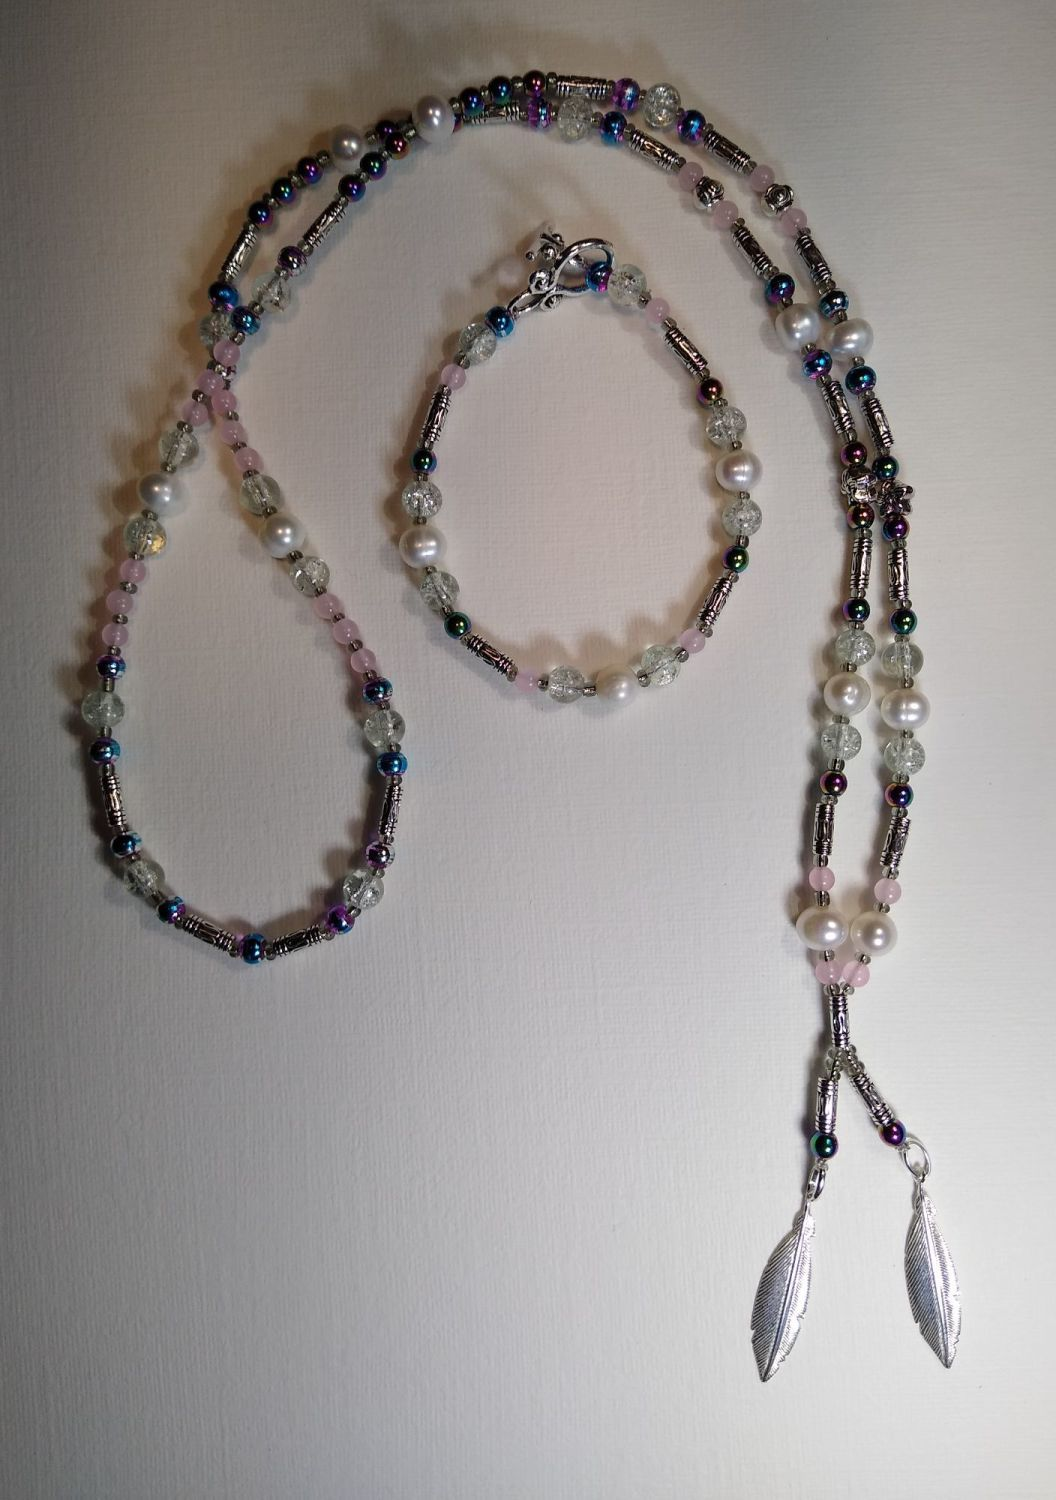 STERLING SILVER FEATHERS WITH FRESH WATER PEARLS, RAINBOW HEMATITE AND ROSE